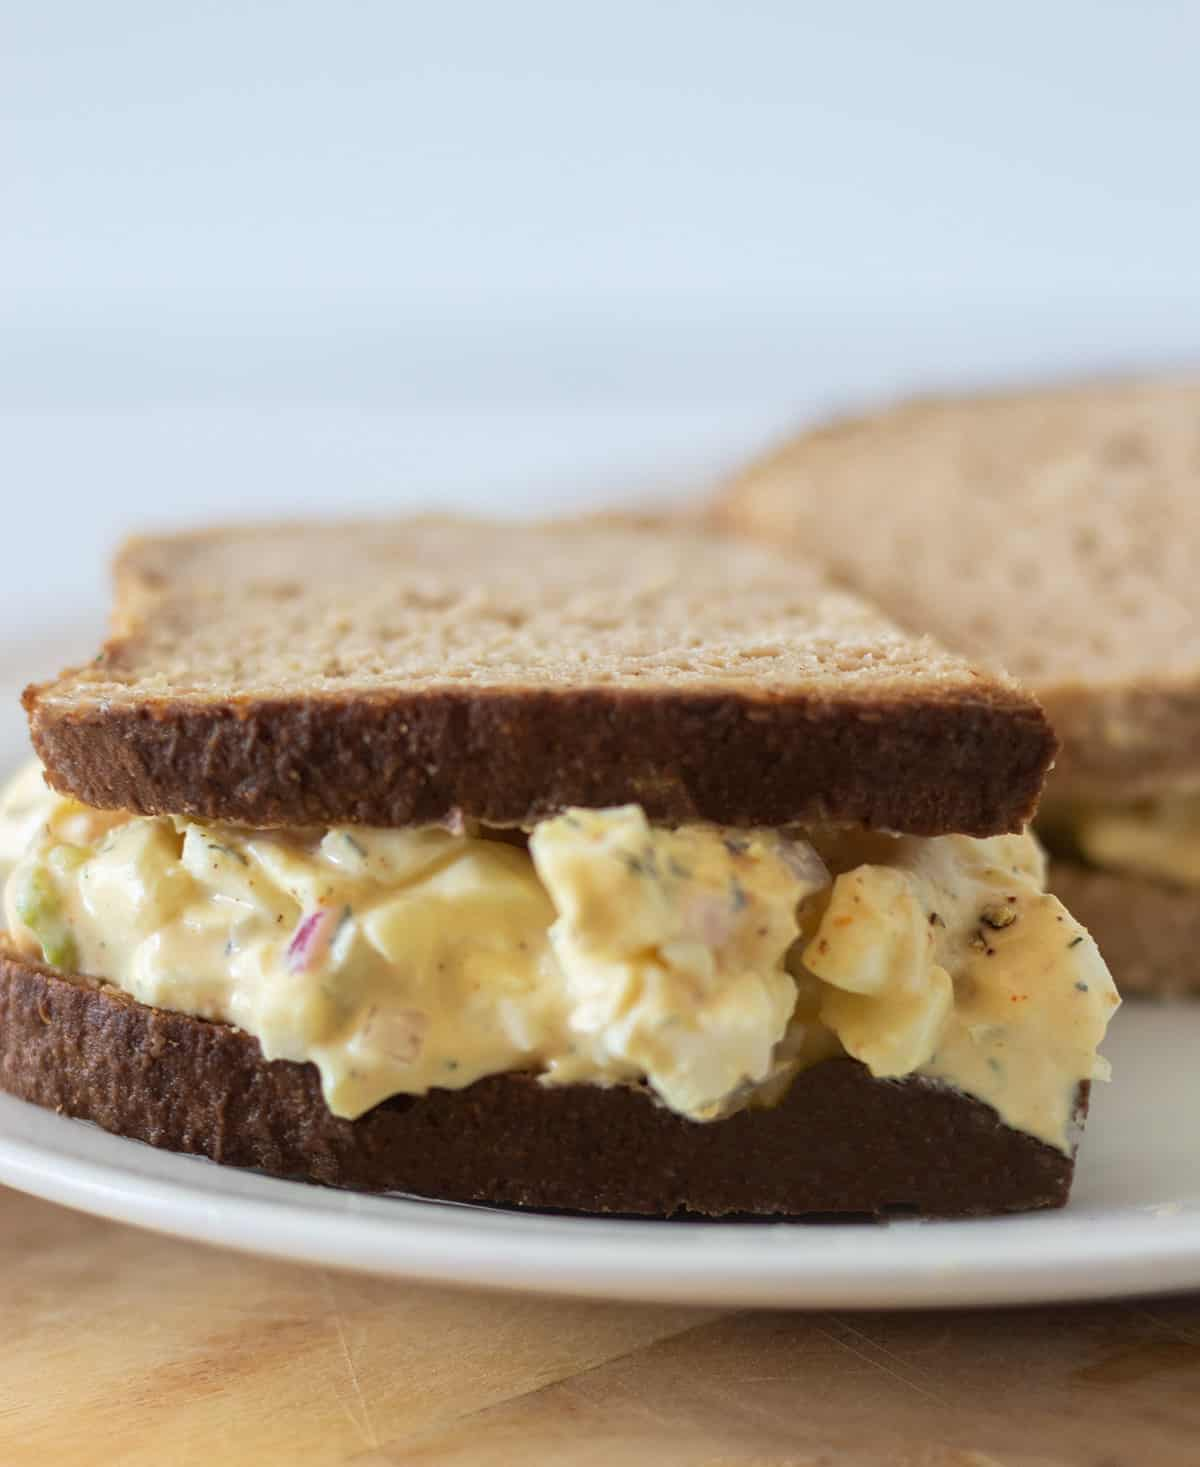 egg salad on a sandwich served on a white plate